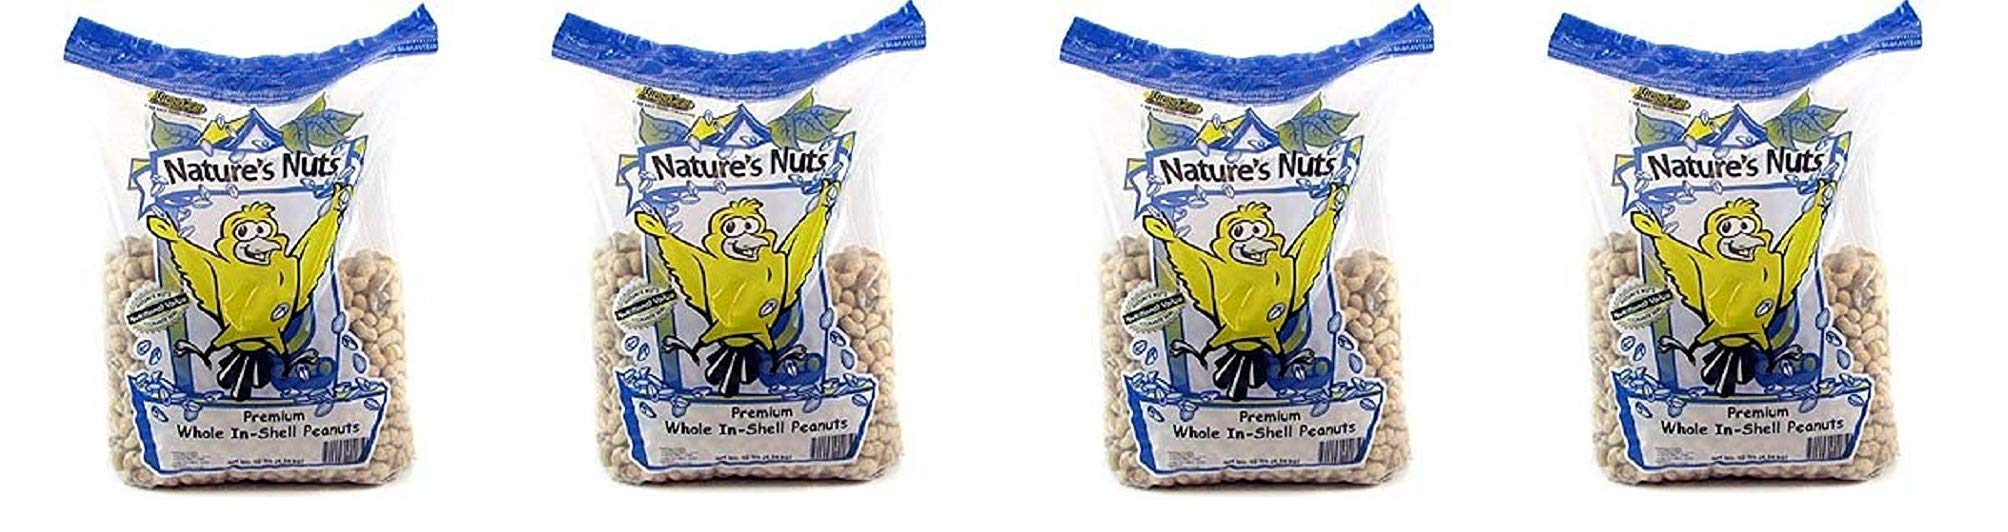 Natures Nuts Chuckanut Products Premium Whole-in-Shell Peanuts, 10 lbs (4-Pack)